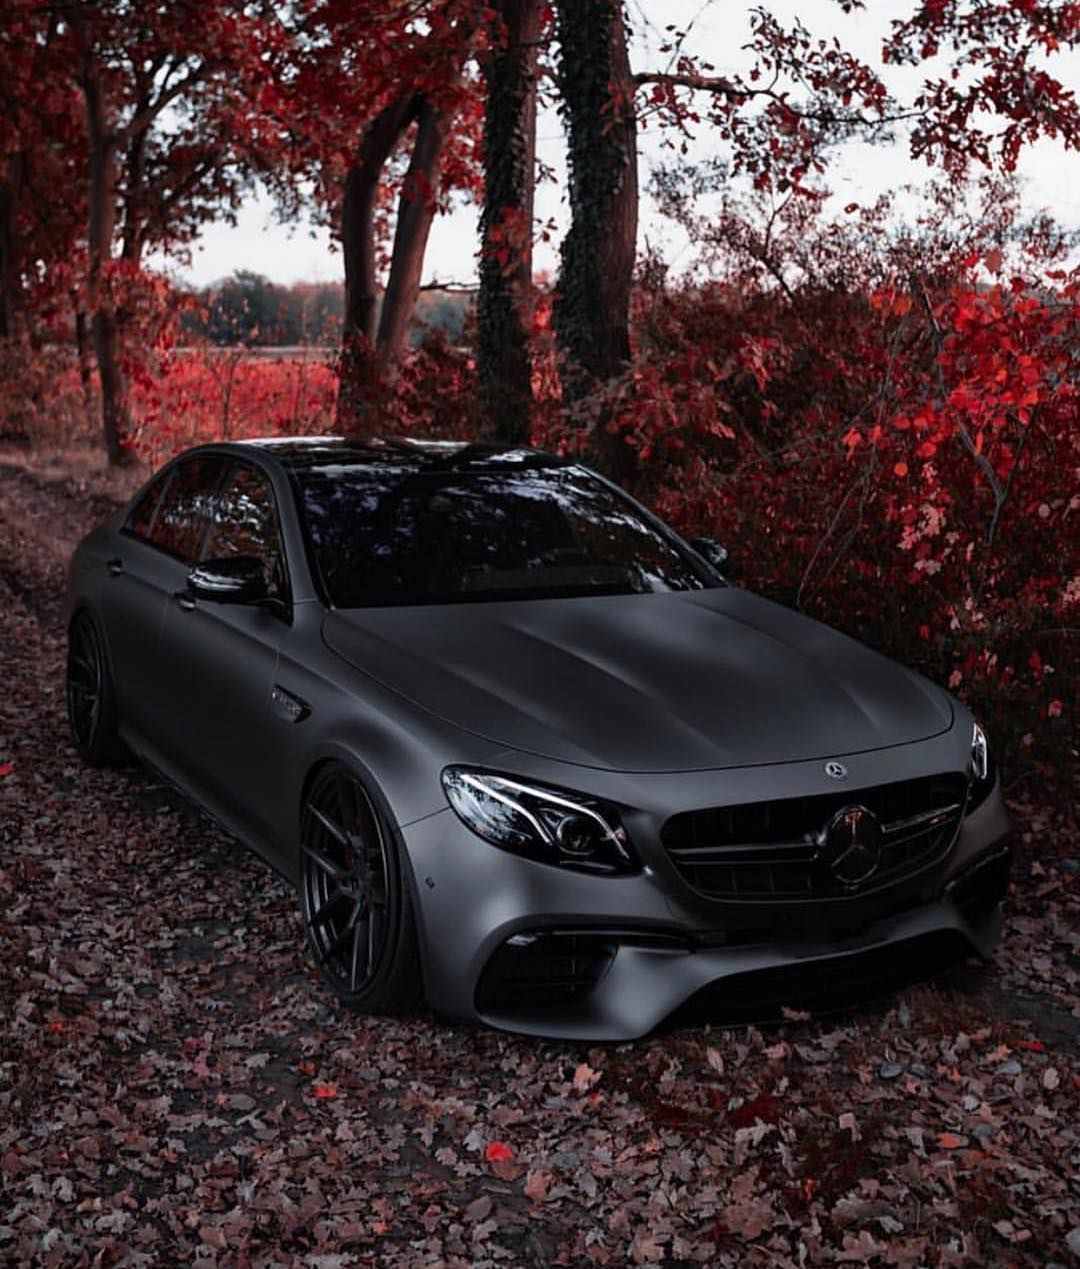 Mercedes Sports Cars New: The Most Luxury Cars In The World [With Best Photos Of